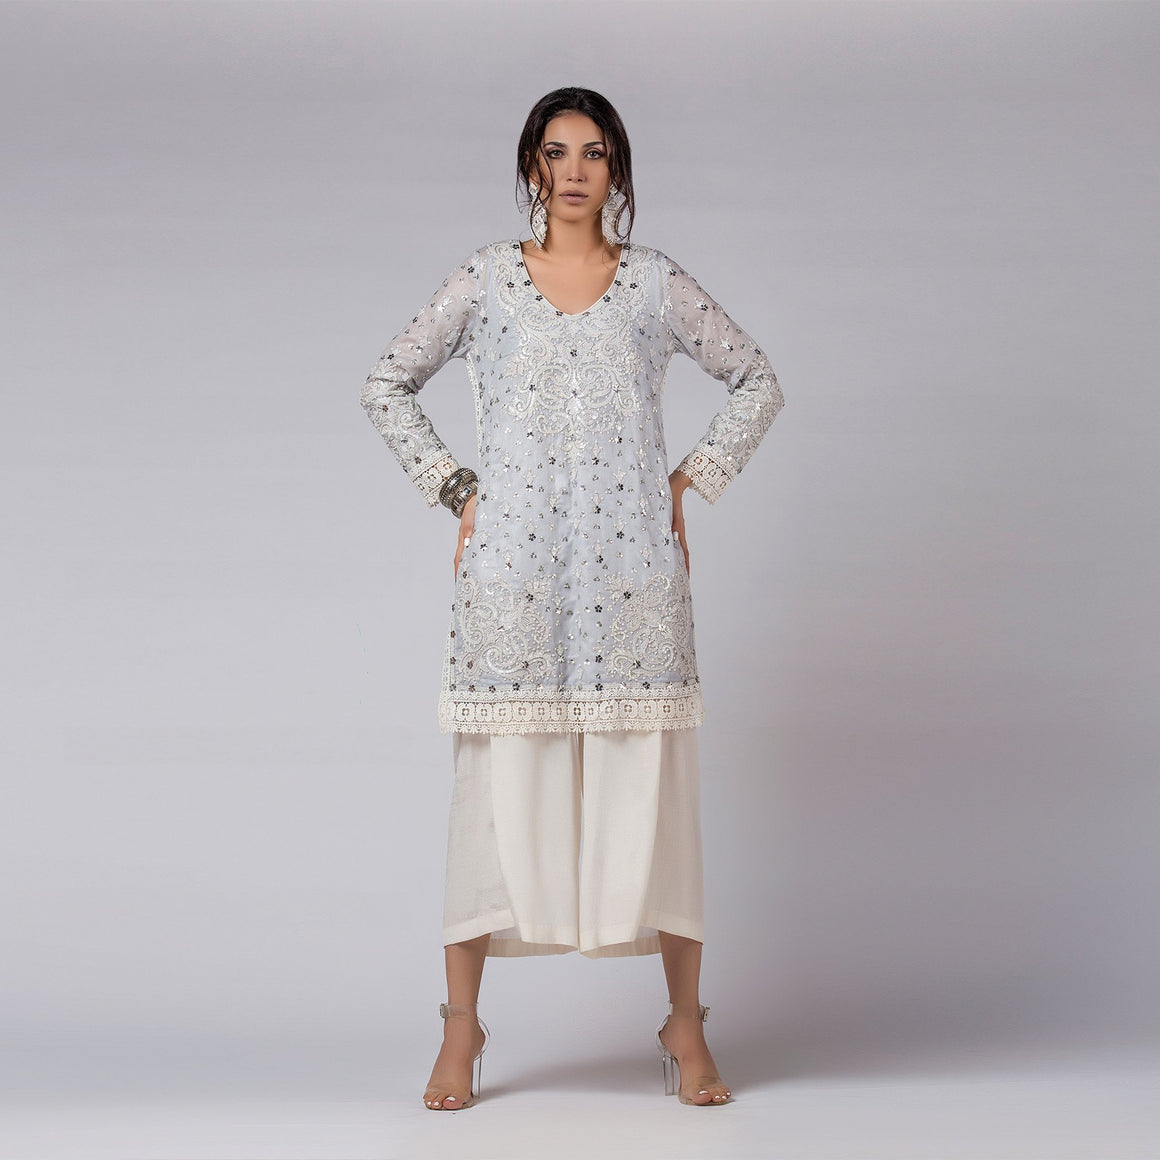 Rizwan Beyg - Blue Shadow Pearls And Sequins Embellished Shirt with Dupatta